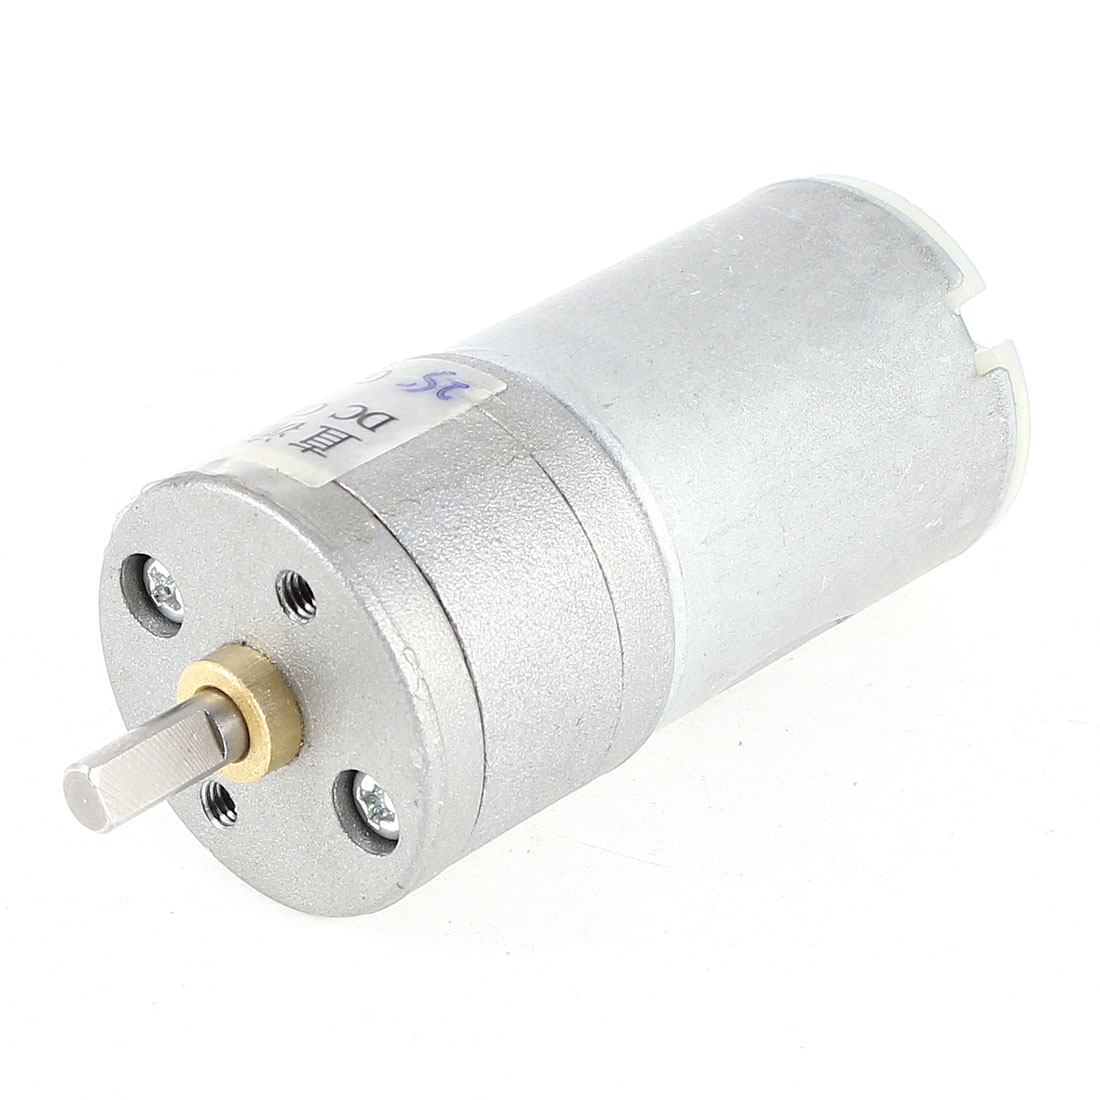 DC 12V 1500RPM 4mm D Shaped Shaft Cylinder Electric Geared Box Speed Reduce Motor